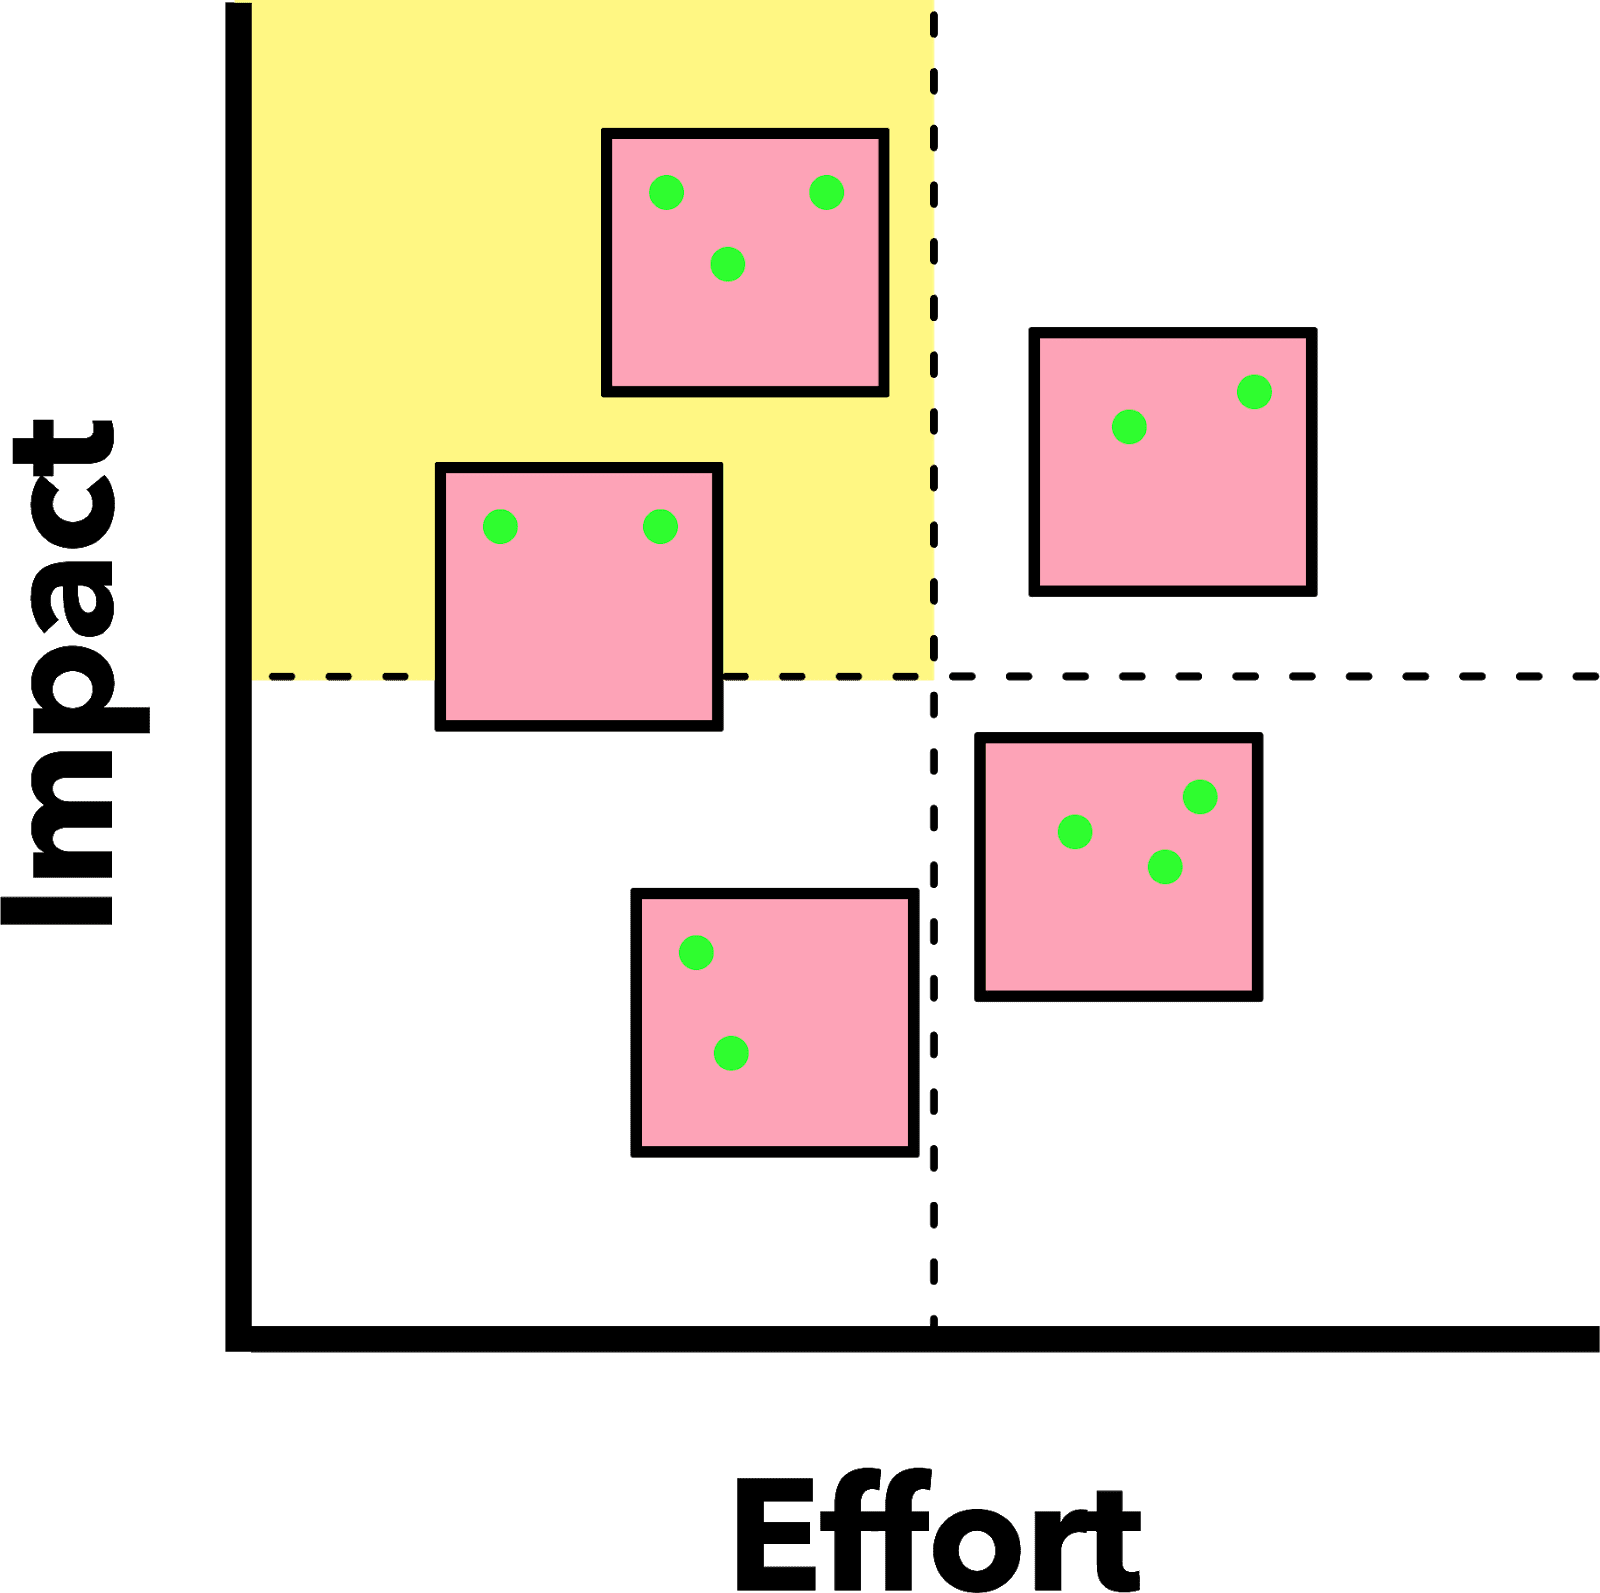 Impact effort matrix